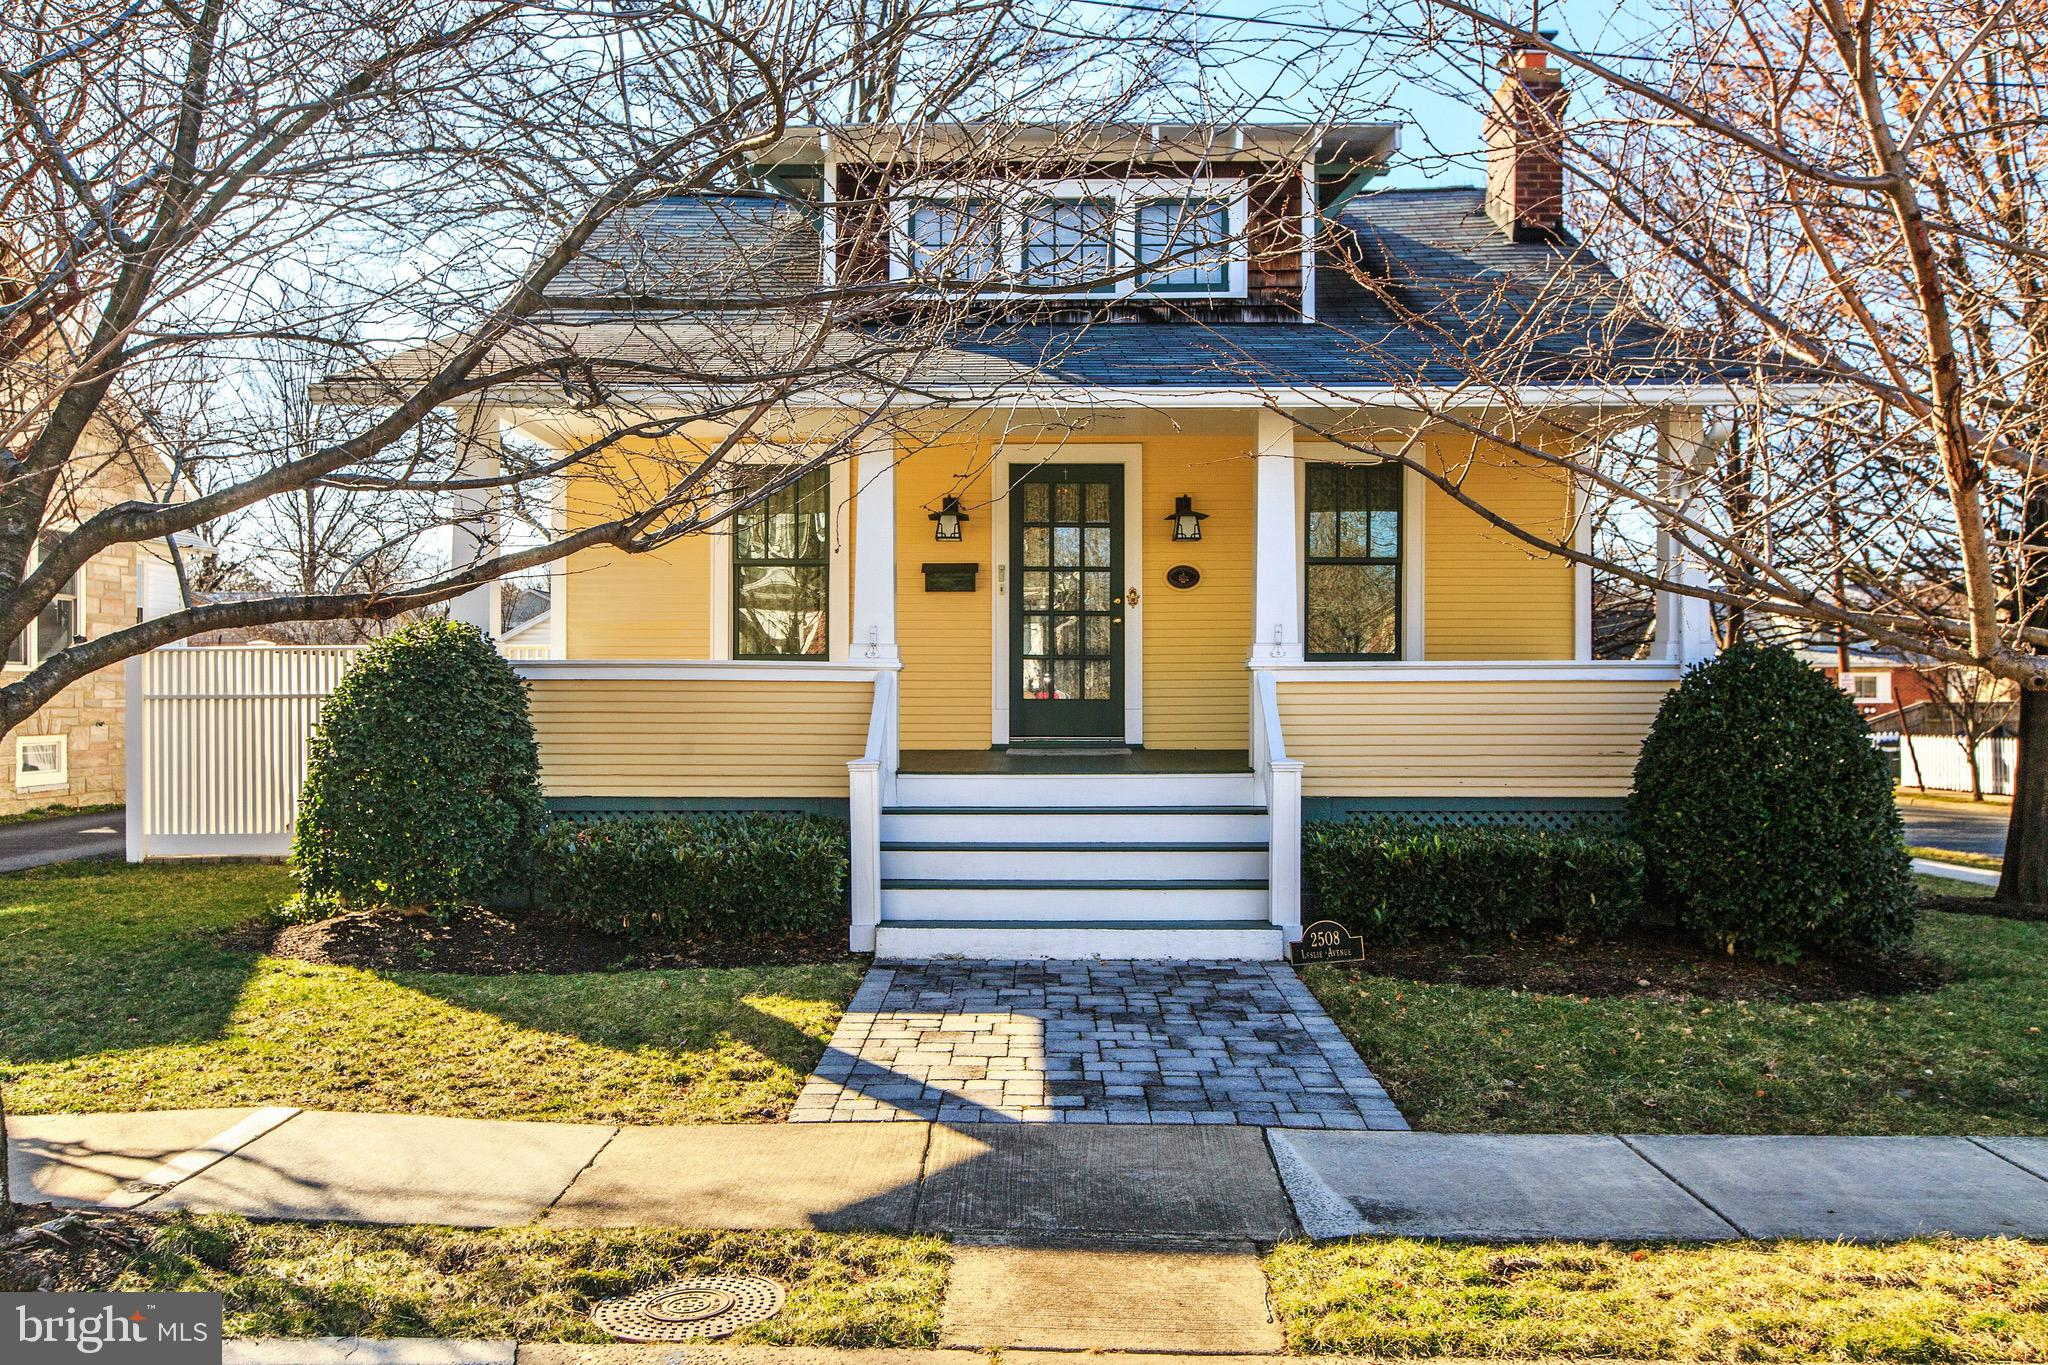 This charming Del Ray Bungalow offers inviting front porch and is situated on a gorgeous, treed corner lot, adding incredible shade and privacy. Located just blocks off The Avenue in the heart of Del Ray and short stroll to thriving Potomac Yards. Beautifully renovated from top to bottom in 2001 and oozing with charm. Custom woodwork through-out, gleaming hardwood floors, offering a rarely found main level master suite, with two full bathrooms and smaller second bedroom converted into a large maser closet. The wide open, yet cozy living room offers a wood burning fireplace and tranquil study. The separate dinging area has a small bump out and opens to kitchen maple cabinets with Plexiglas liner, granite counter tops and built-in breakfast bar. The beautifully hardscaped backyard offers for low maintenance. The French doors opening onto the beautiful paver patio from the studios indoor-outdoor kitchen makes for perfect outdoor entertaining. The wood deck off the kitchen is perfect for morning or evening dinning. Hard to find in Del Ray, oversized two car garages with addition workspace and storage, is a dream come true for most. The paver driveway offers not only convenient off-street parking for two cars, but is stunning to look at. The two-level studio leads to many possibilities. Home office perhaps, or add a full bath (plumbing added when built) and use as an in-law suite!